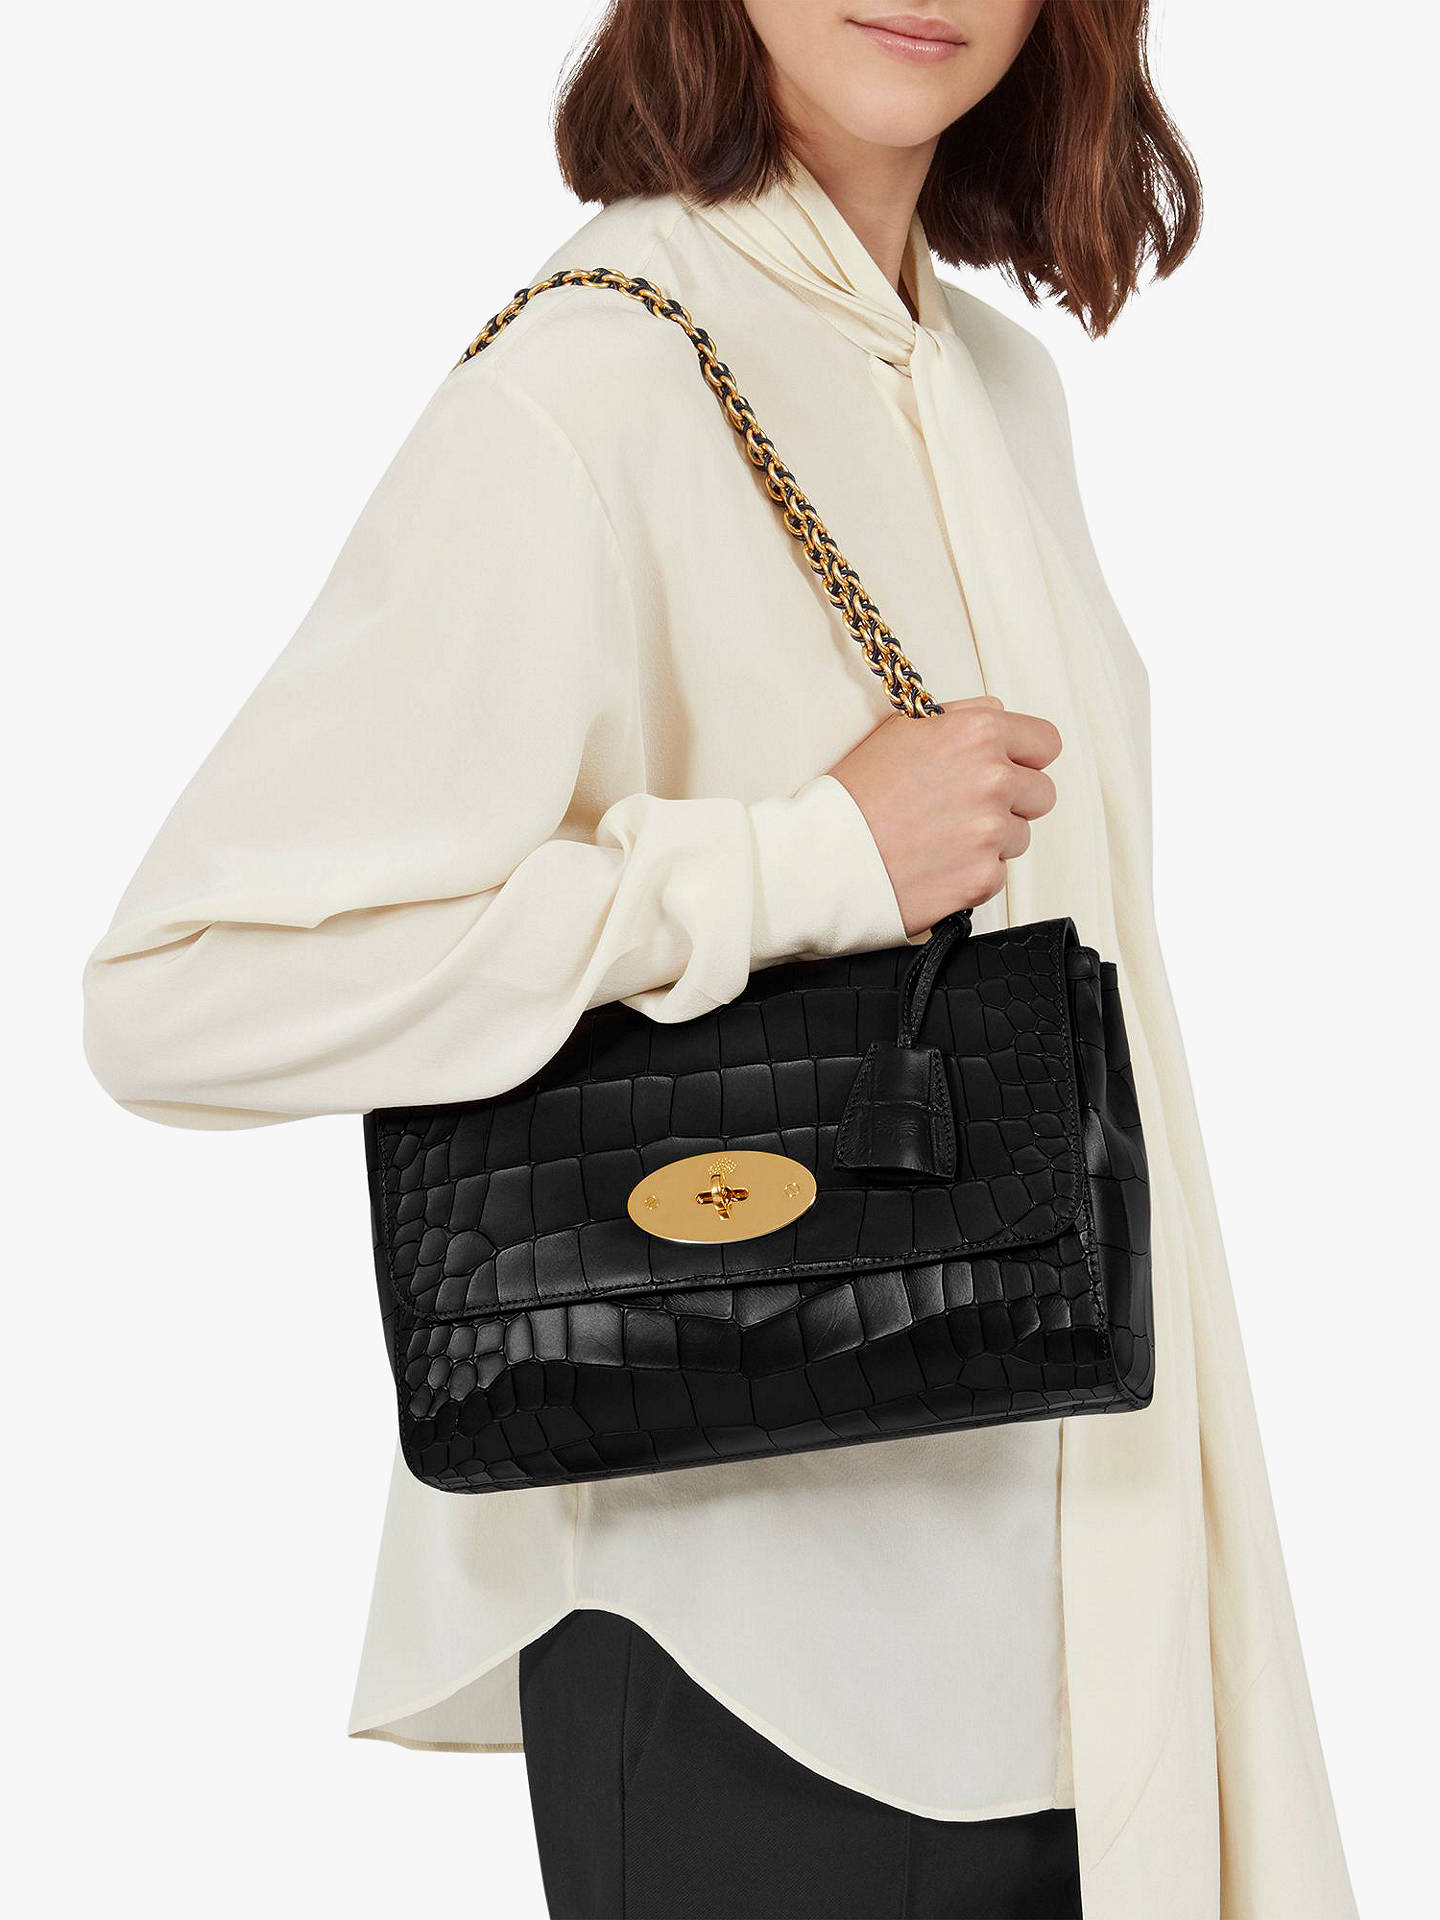 58801190a ... Buy Mulberry Medium Lily Croc Embossed Leather Shoulder Bag